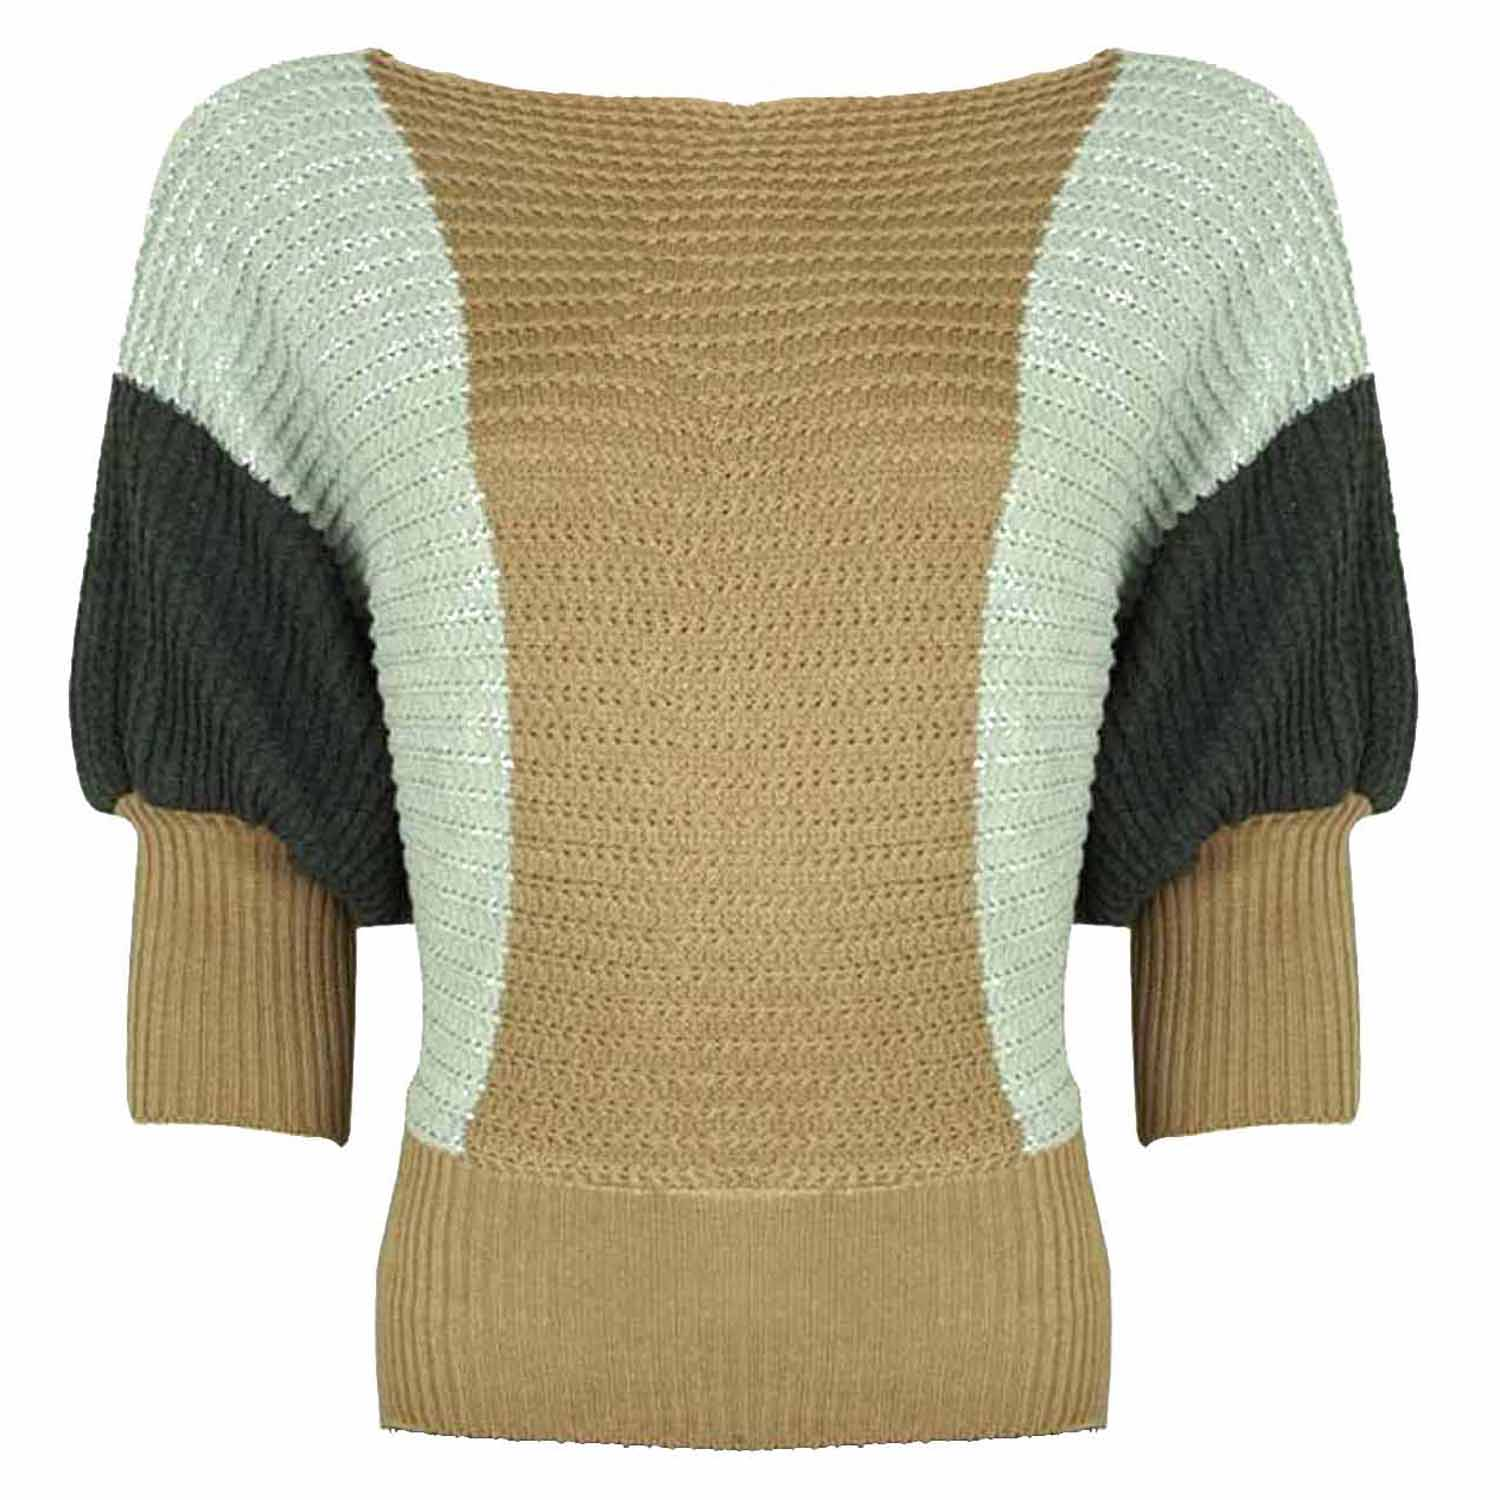 Luxury Divas Two-Tone Sweater With Dolman Sleeves